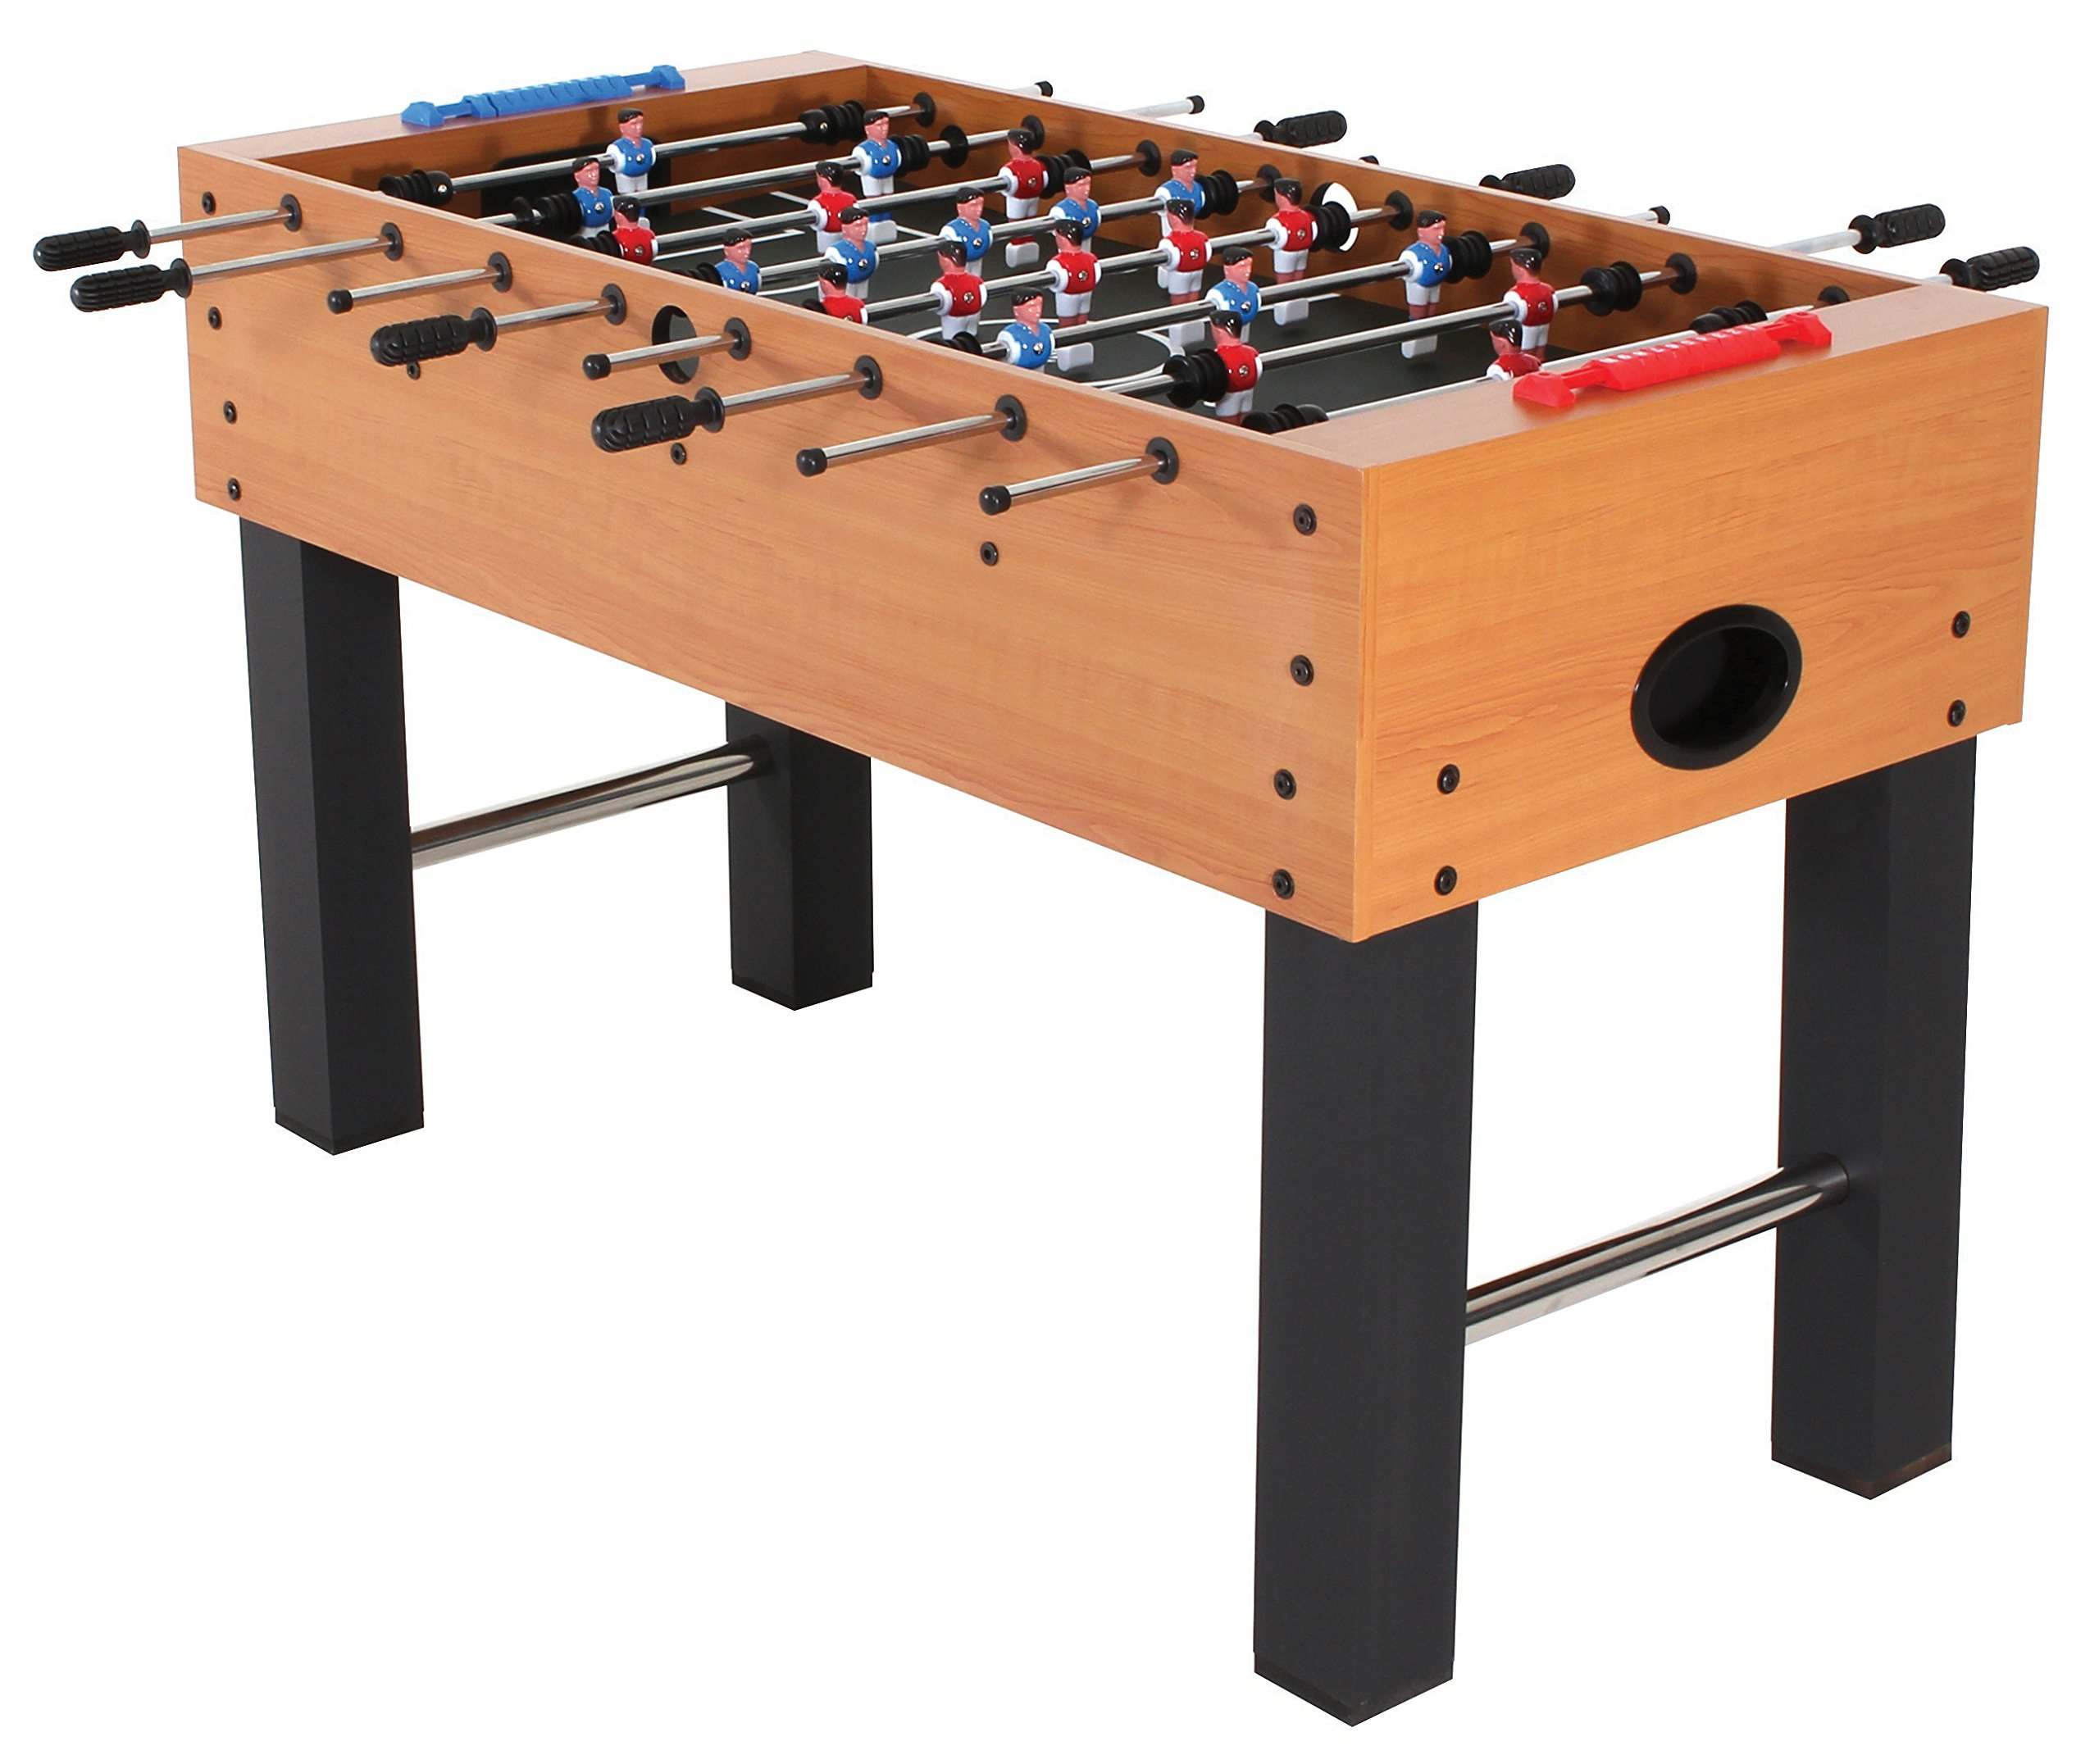 American Legend Charger 52'' Foosball Table with Abacus-Style Scoring and Internal Ball Return System by American Legend